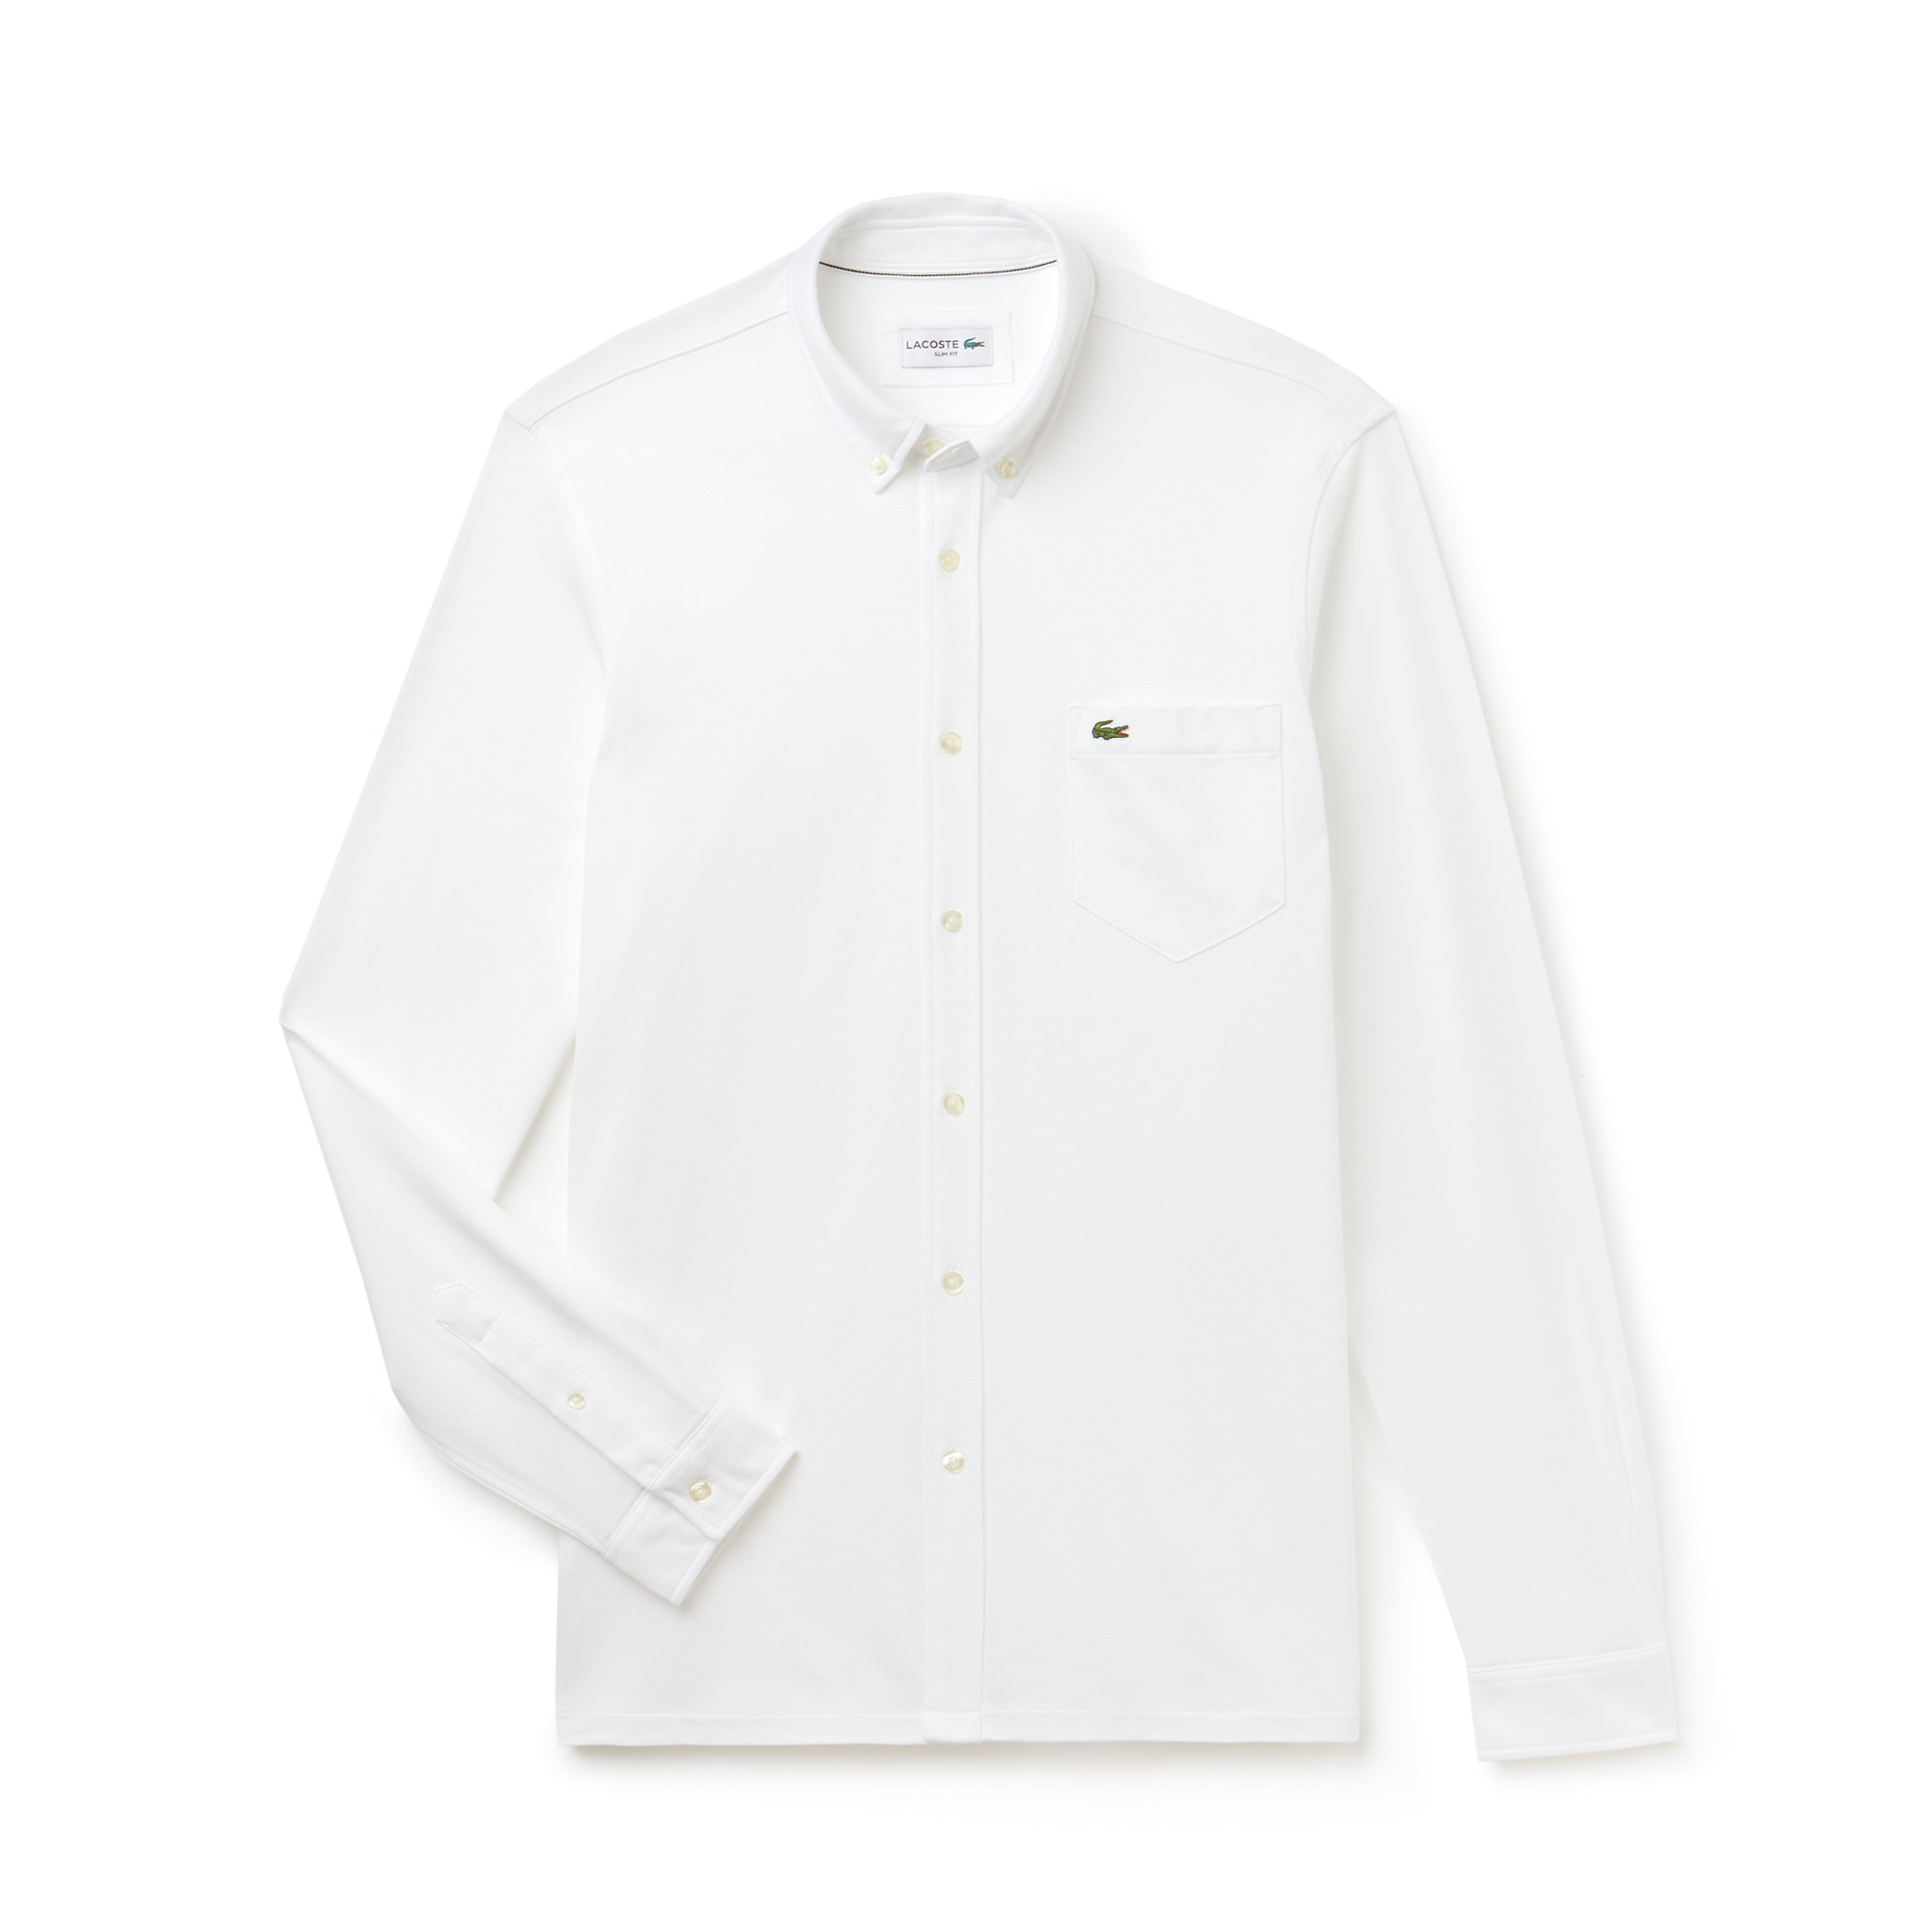 Men's Slim Fit Cotton Jersey Shirt